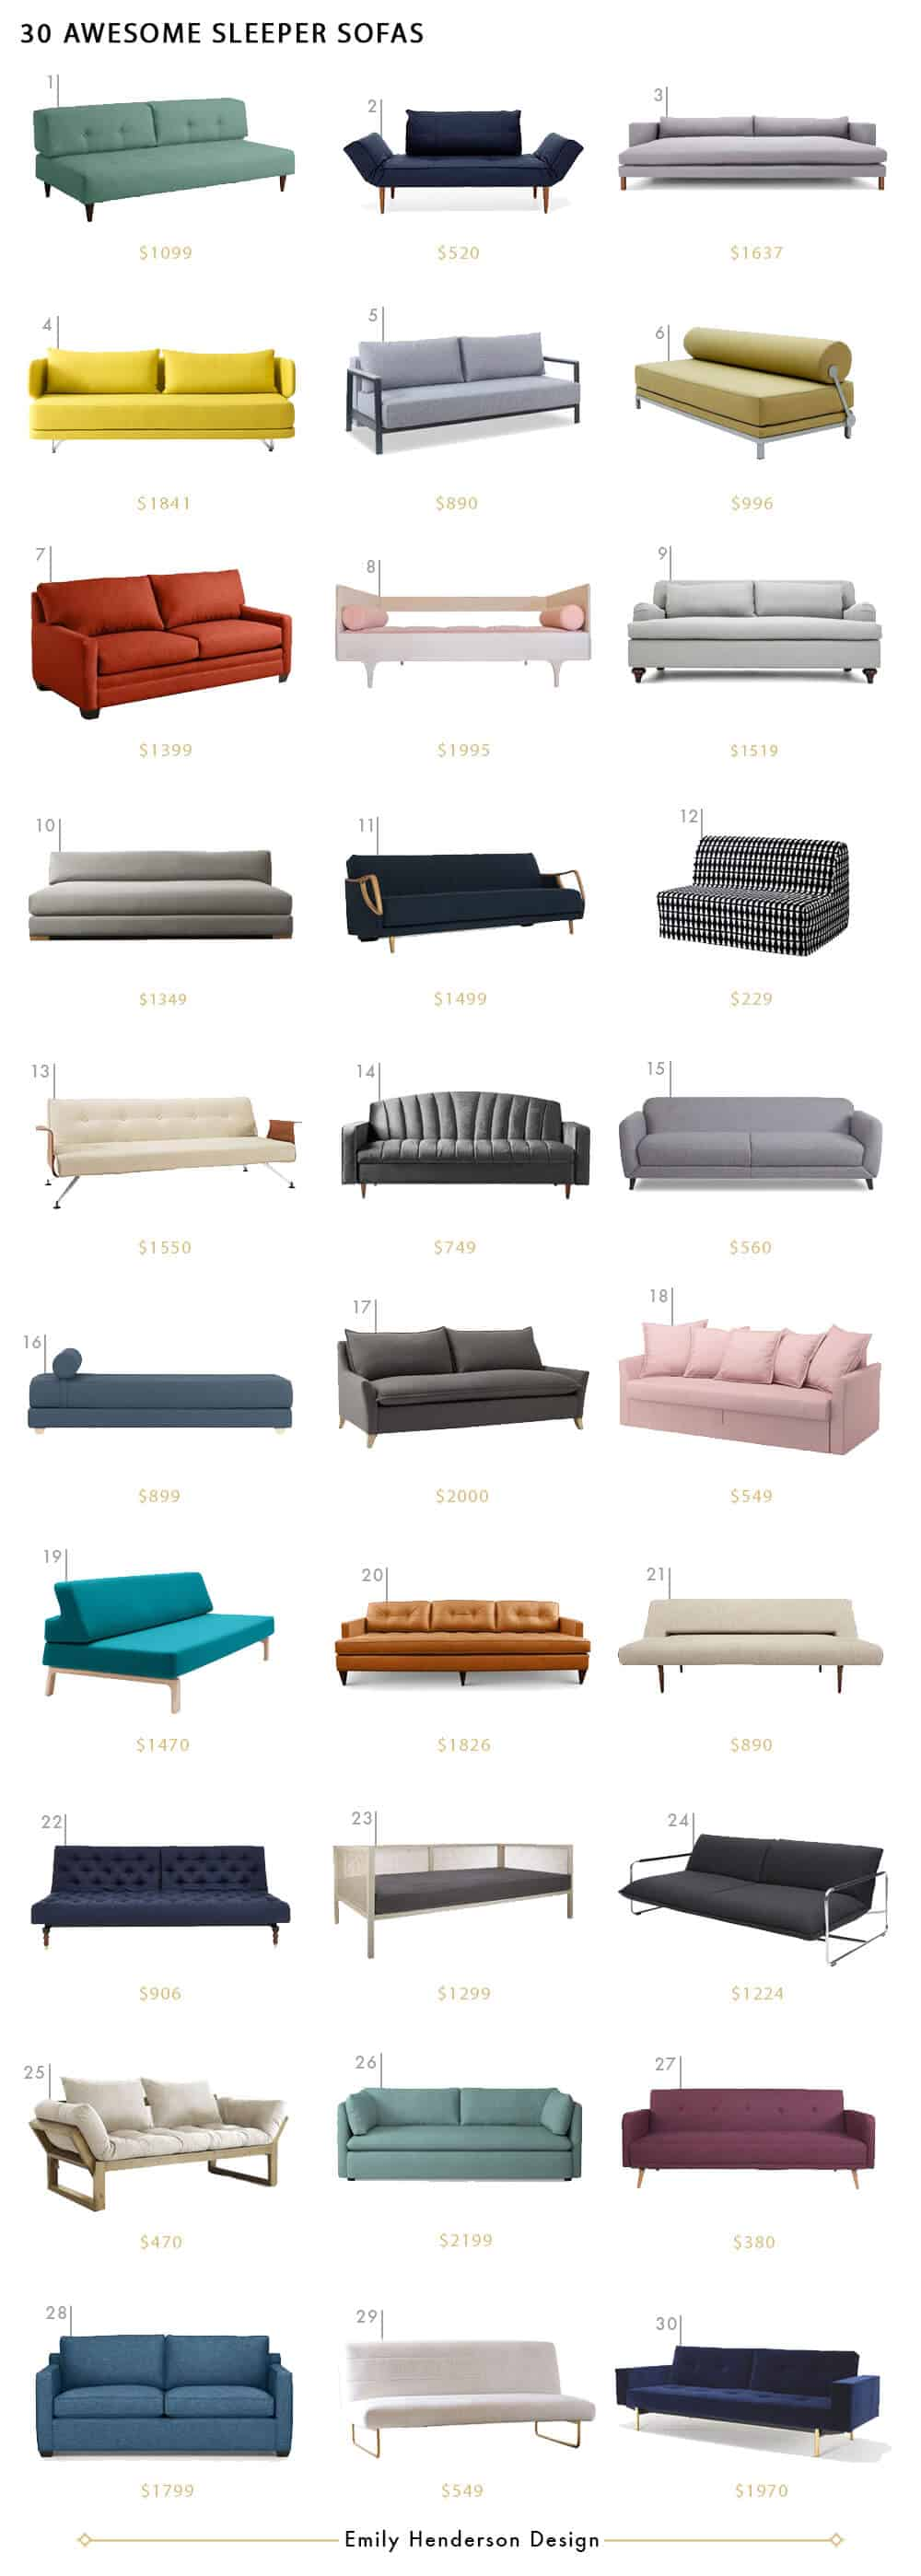 30 Sleeper Sofas We Love Emily Henderson